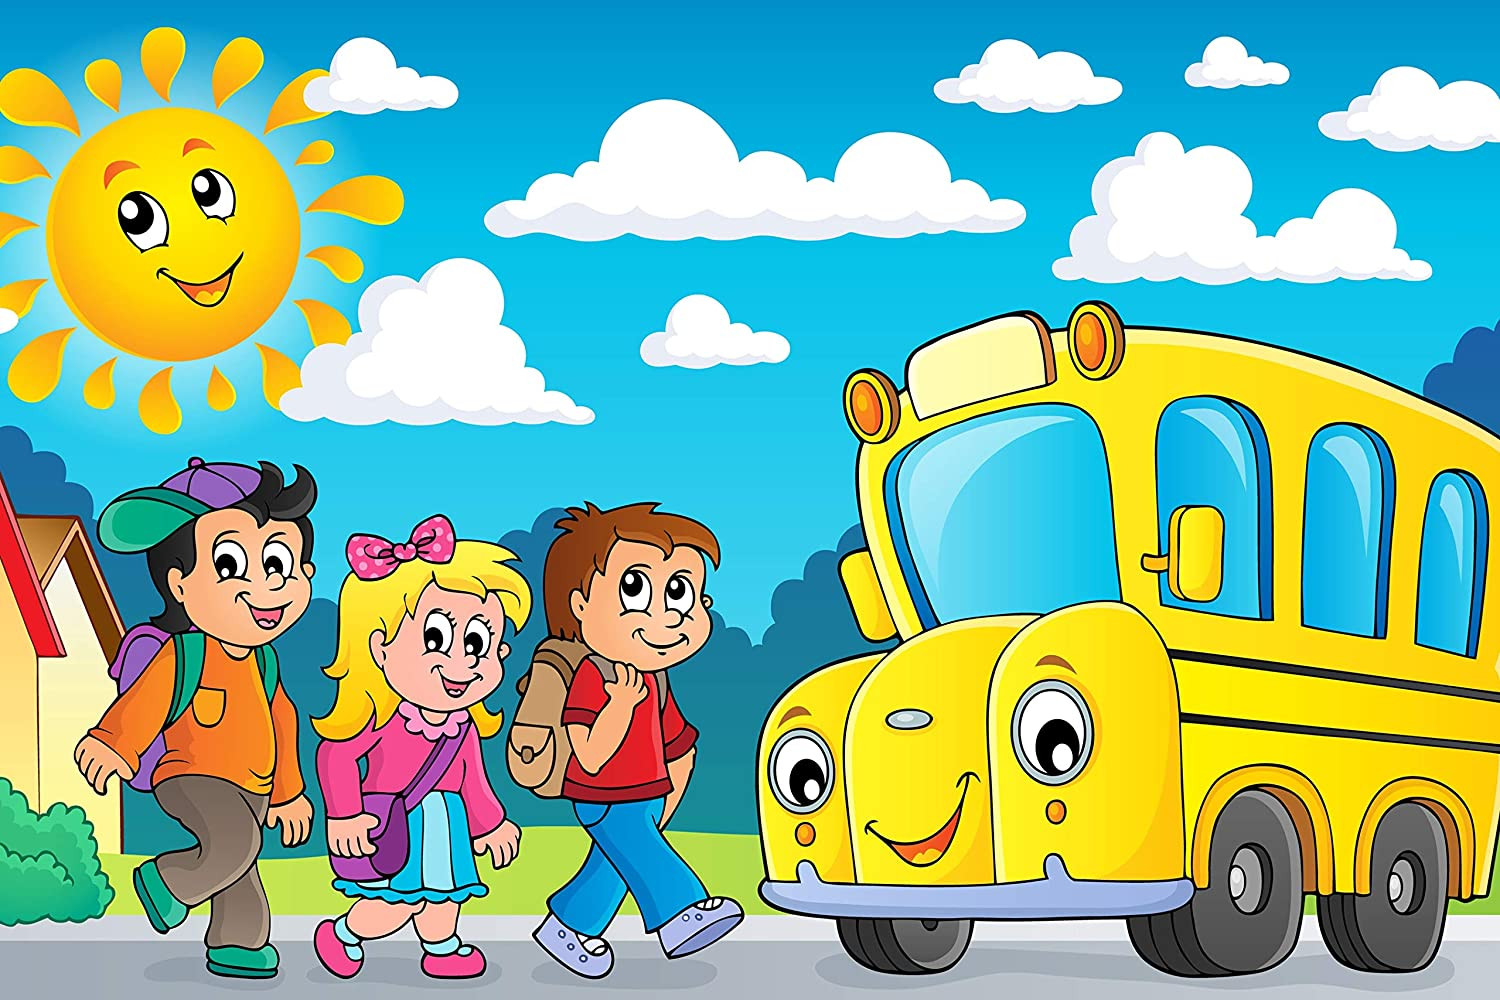 On to The School Bus 35 Piece Children's Jigsaw Puzzle 12 inches X 18 inches